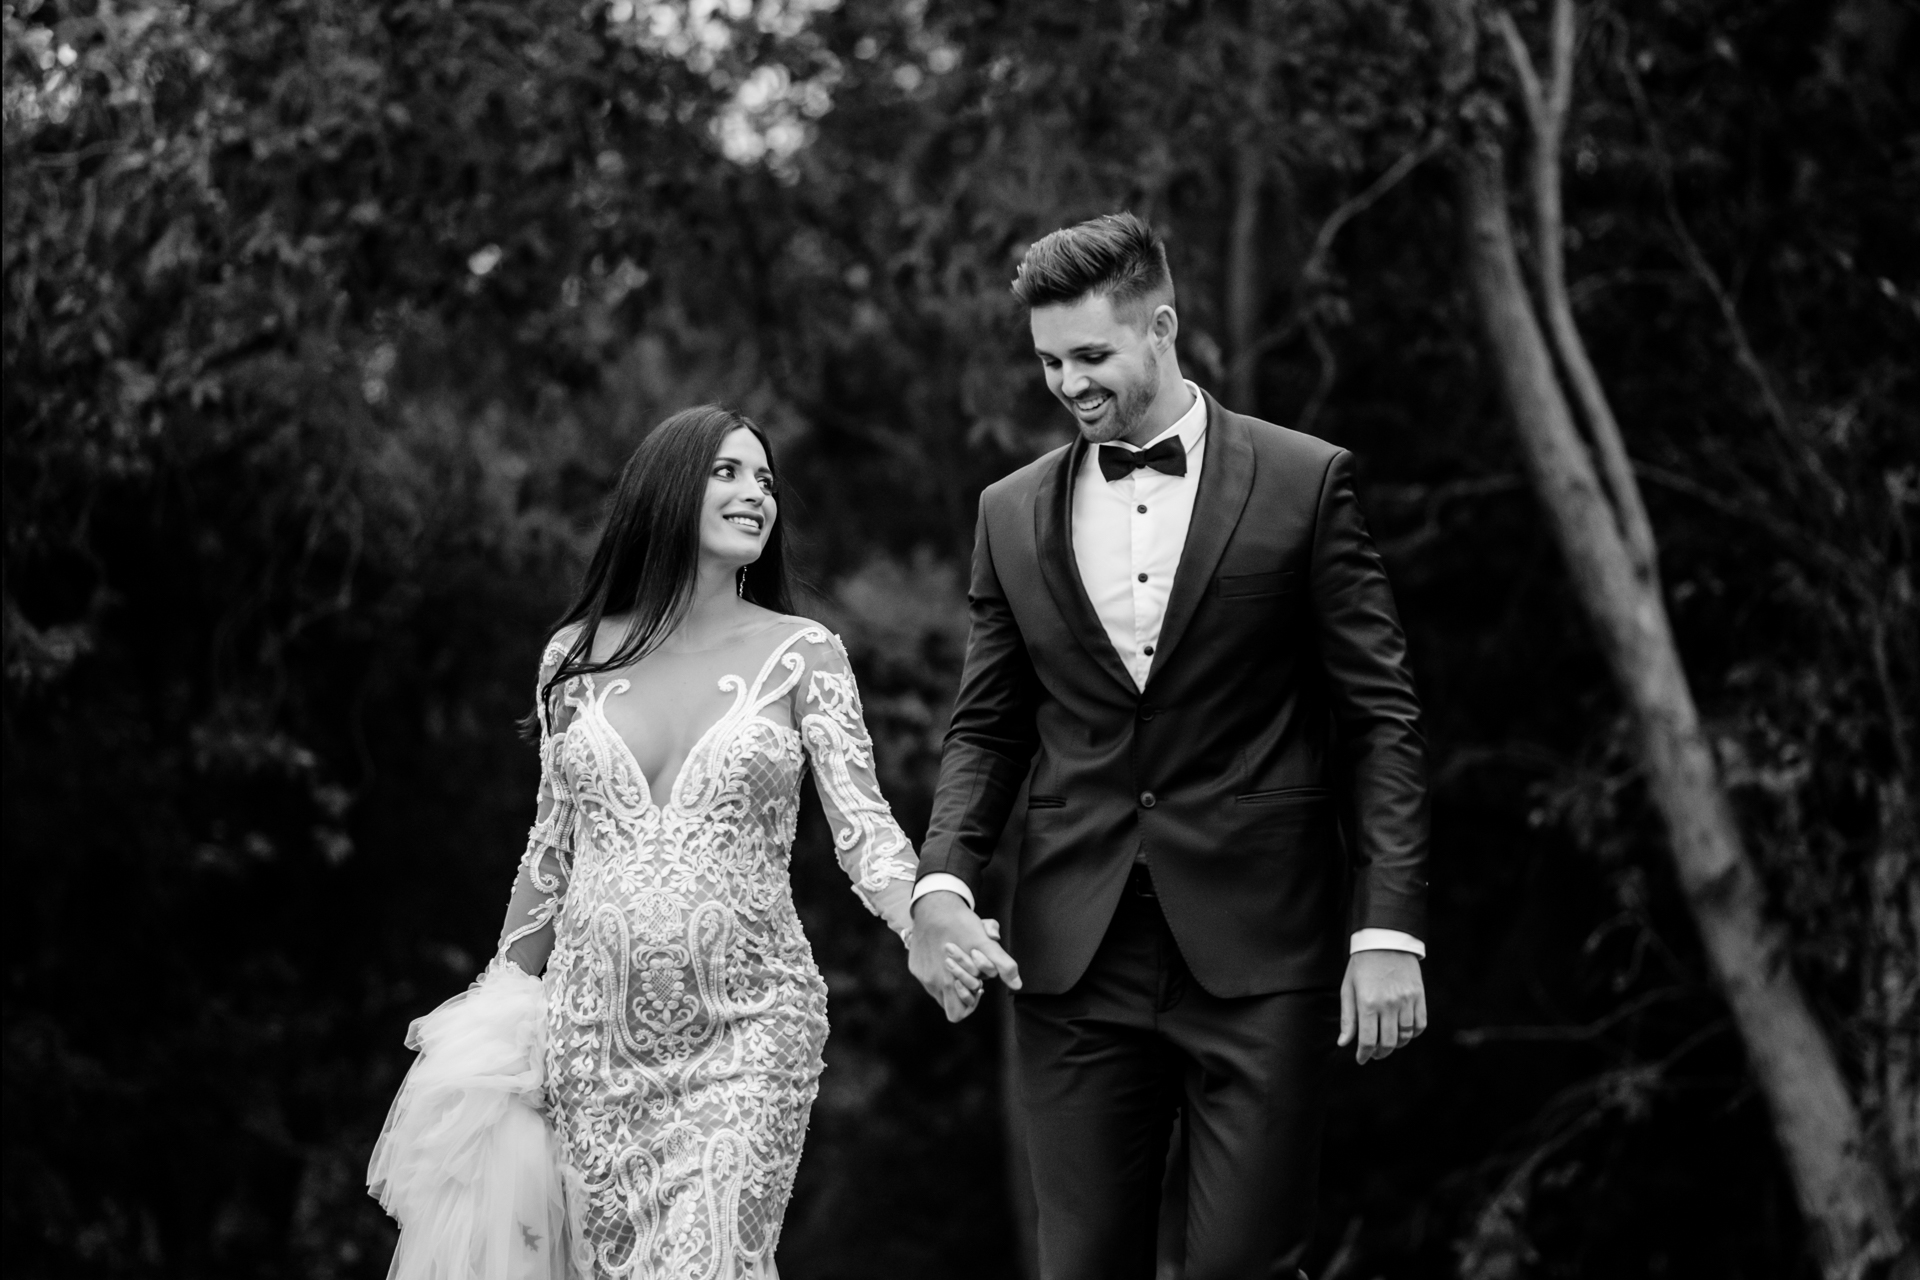 Black and White Elopement Portraits - South Africa | The couple was walking towards their wedding reception